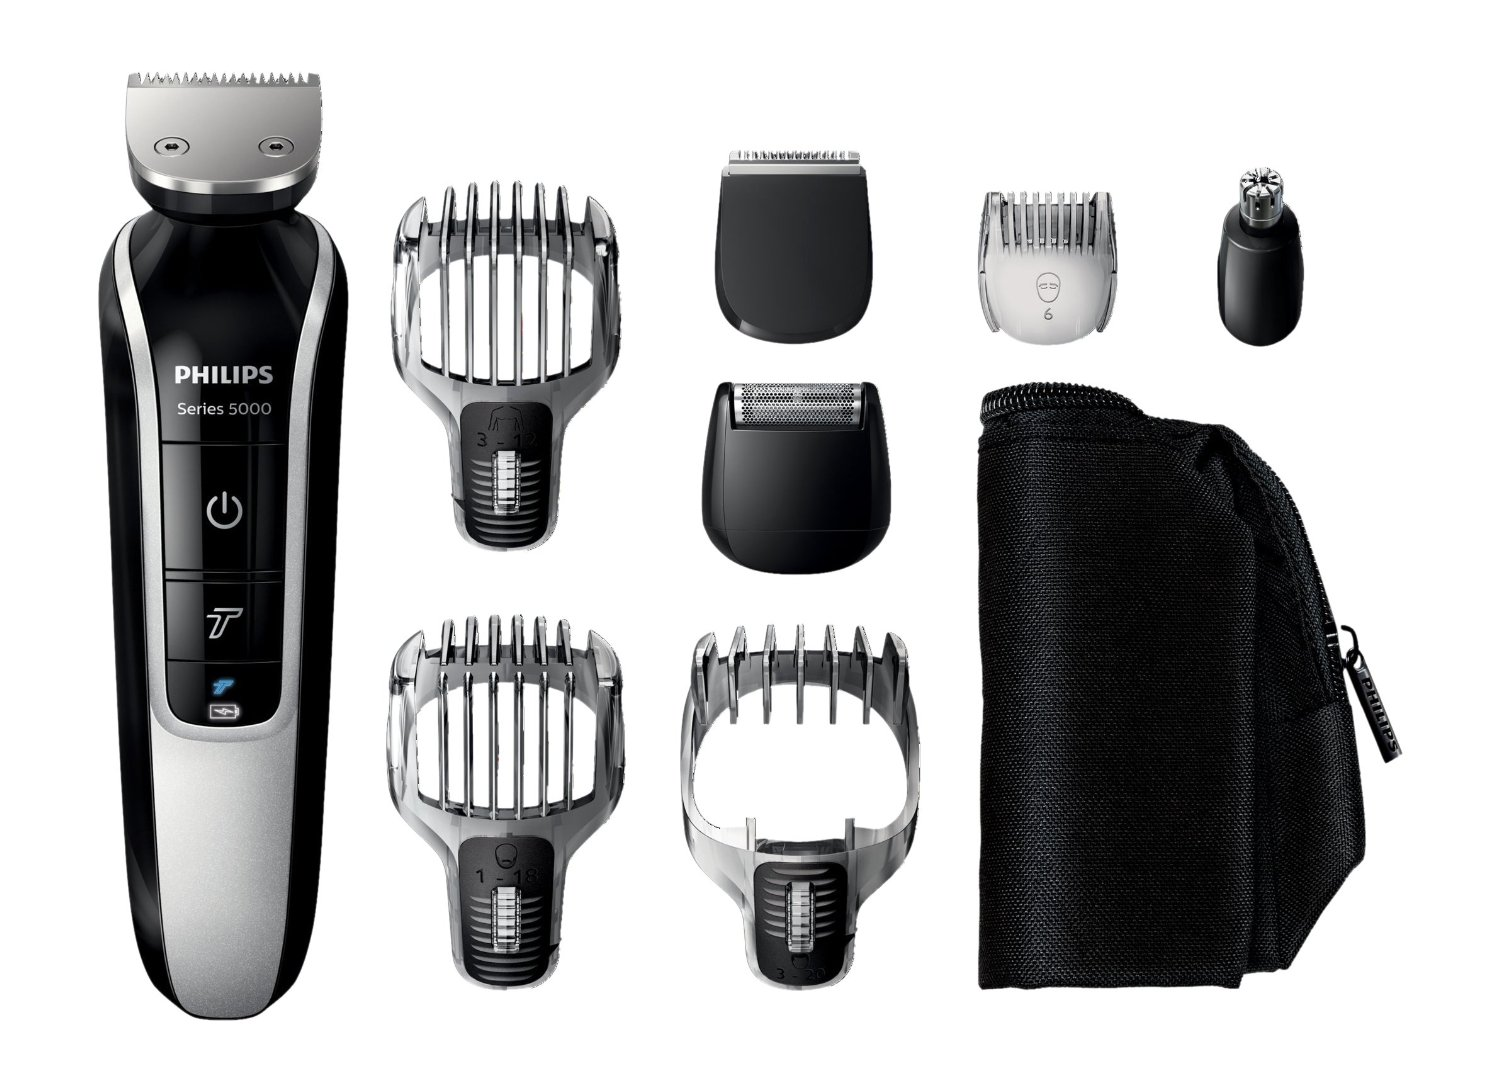 Philips Series 5000 12-In-1 Mens Grooming Kit QG3362/23, Beard Trimmer with Hair Clippers, Moustache, Stubble, Detail Shaving, Trimming, Nose Hair and Eyebrow Trimmers